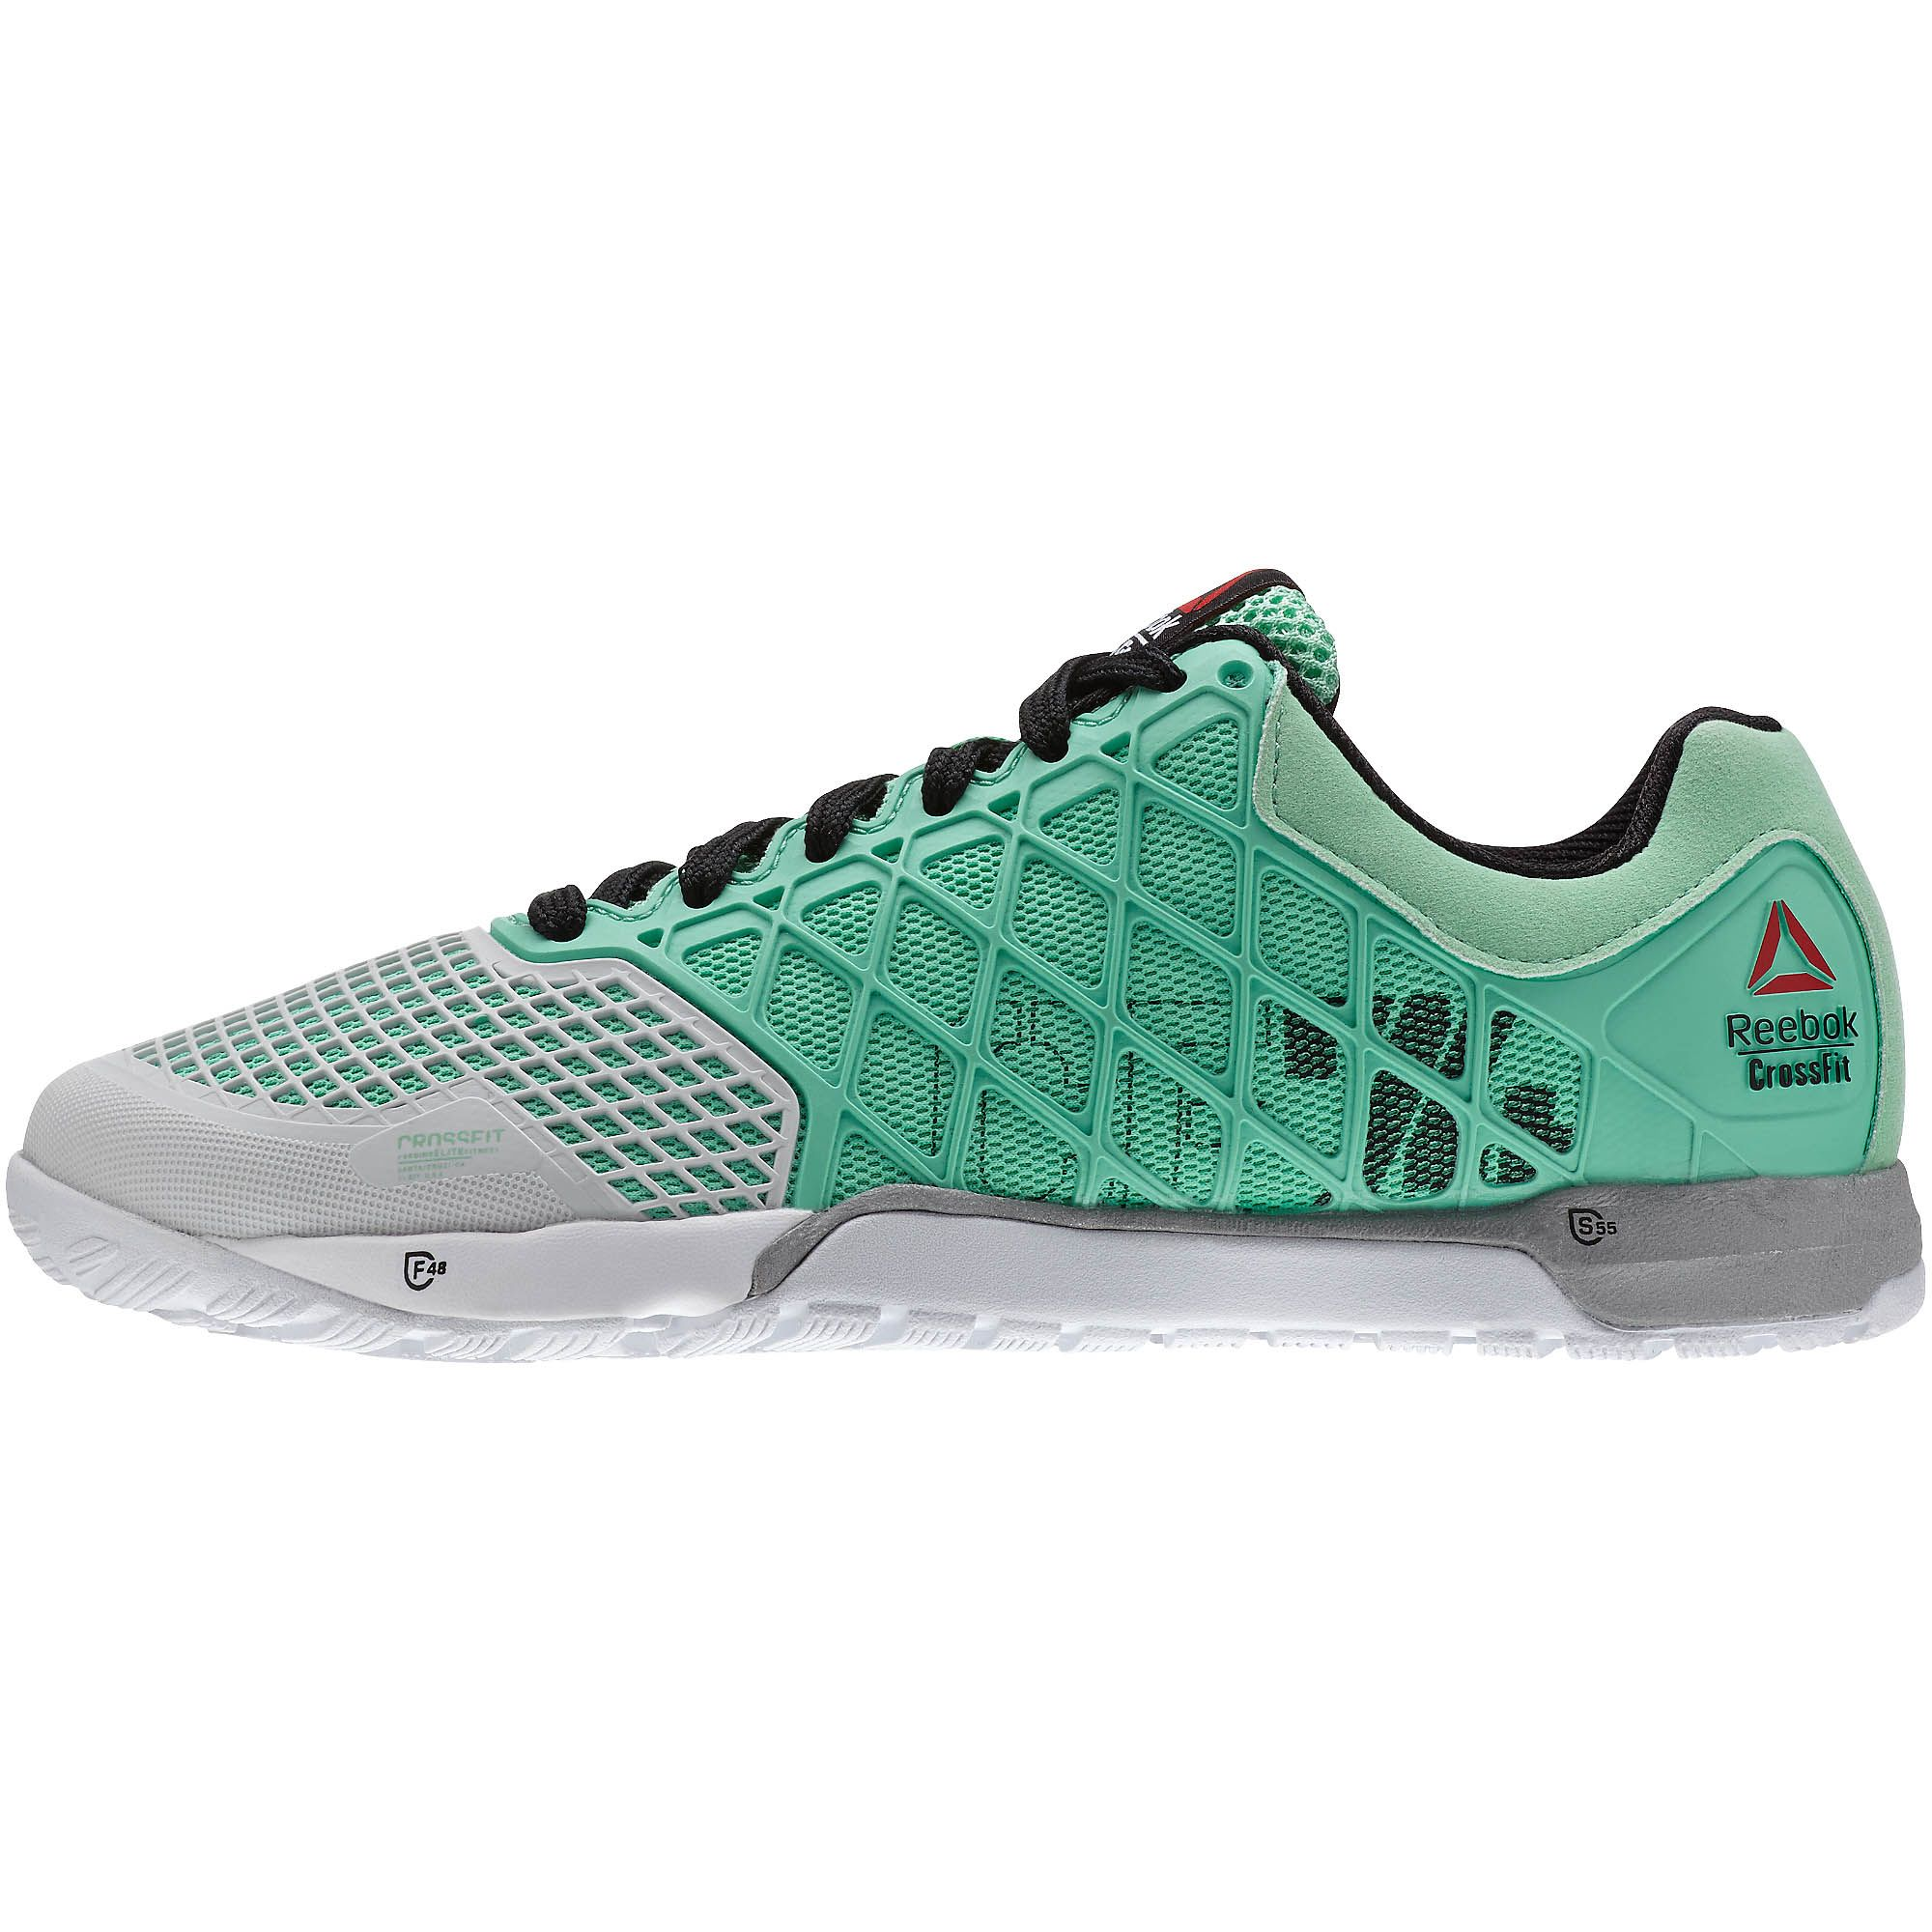 Cheap Womens Training Shoes Reebok CrossFit Nano 4.0 Mint